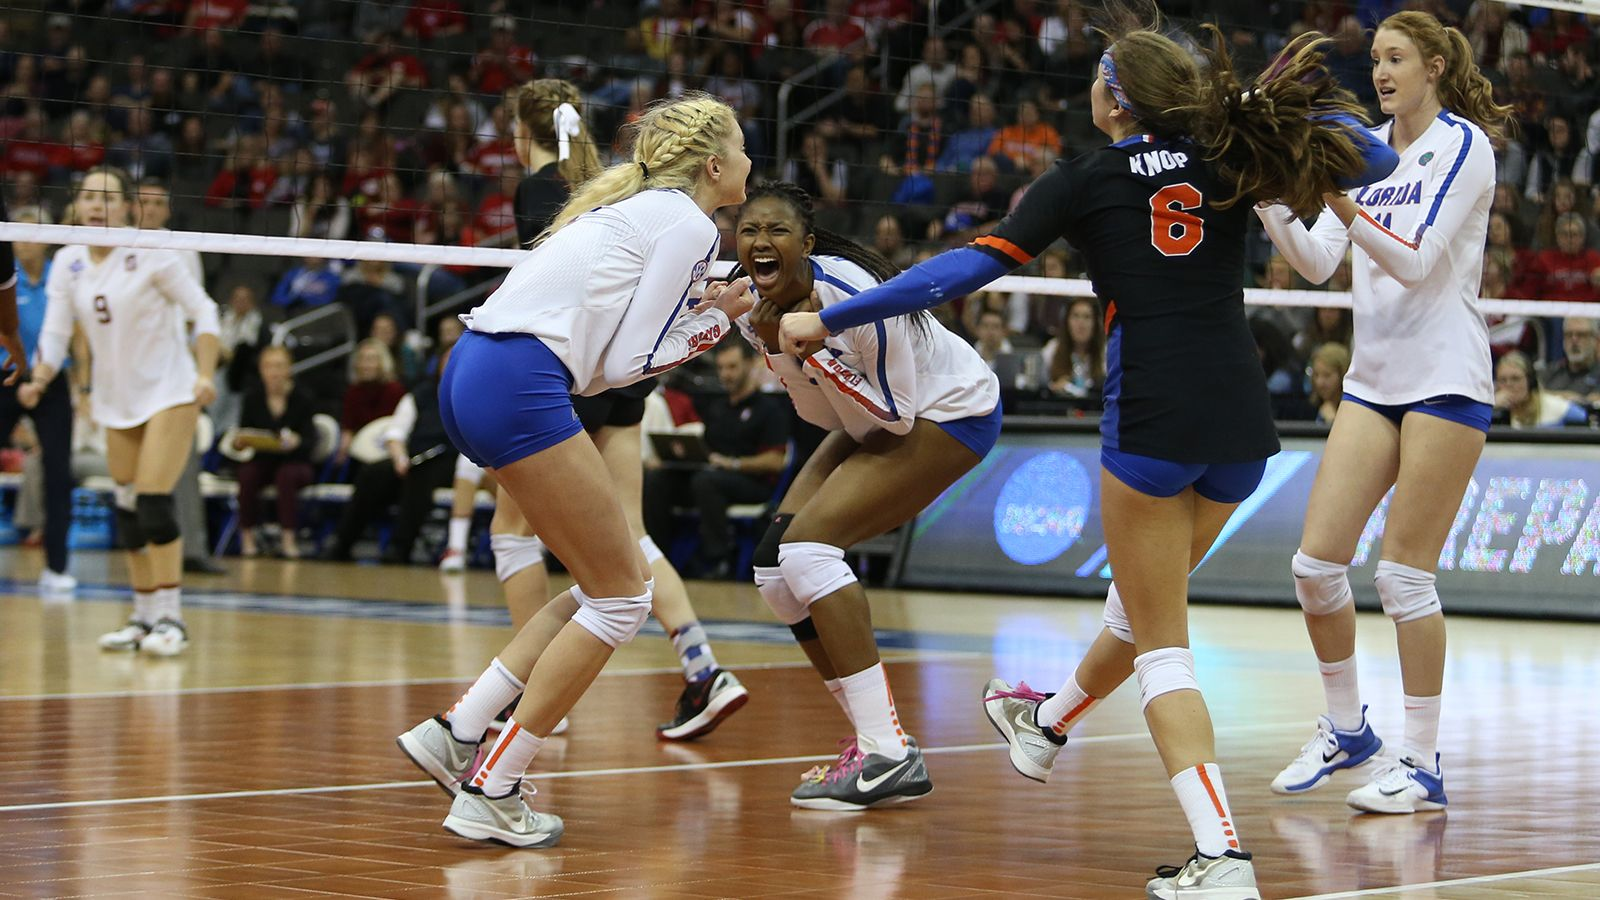 Gators Fend Off Stanford Advance To Ncaa Championship Florida Gators Female Volleyball Players Ncaa Championship Volleyball Shirts